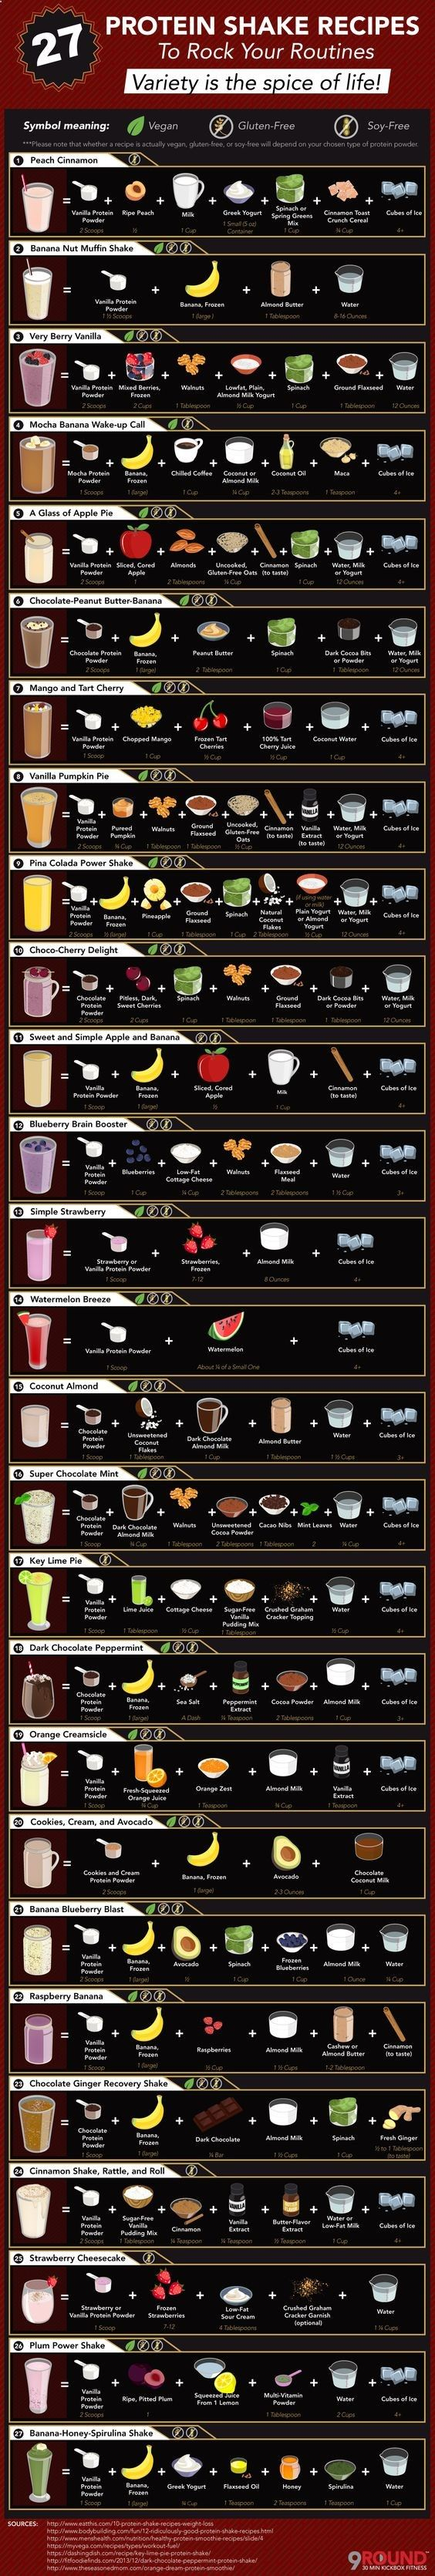 38 Diagrams To Make Losing Weight  Eating Healthier So Much Easier!